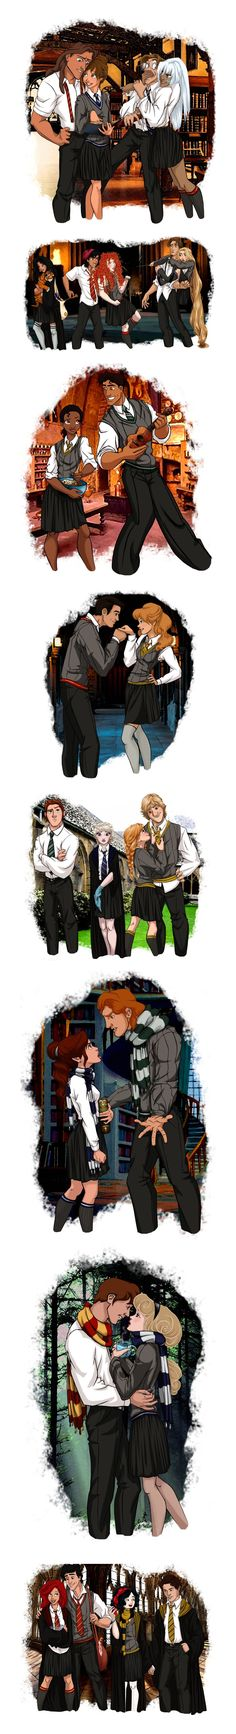 Disney Characters as Hogwarts Students